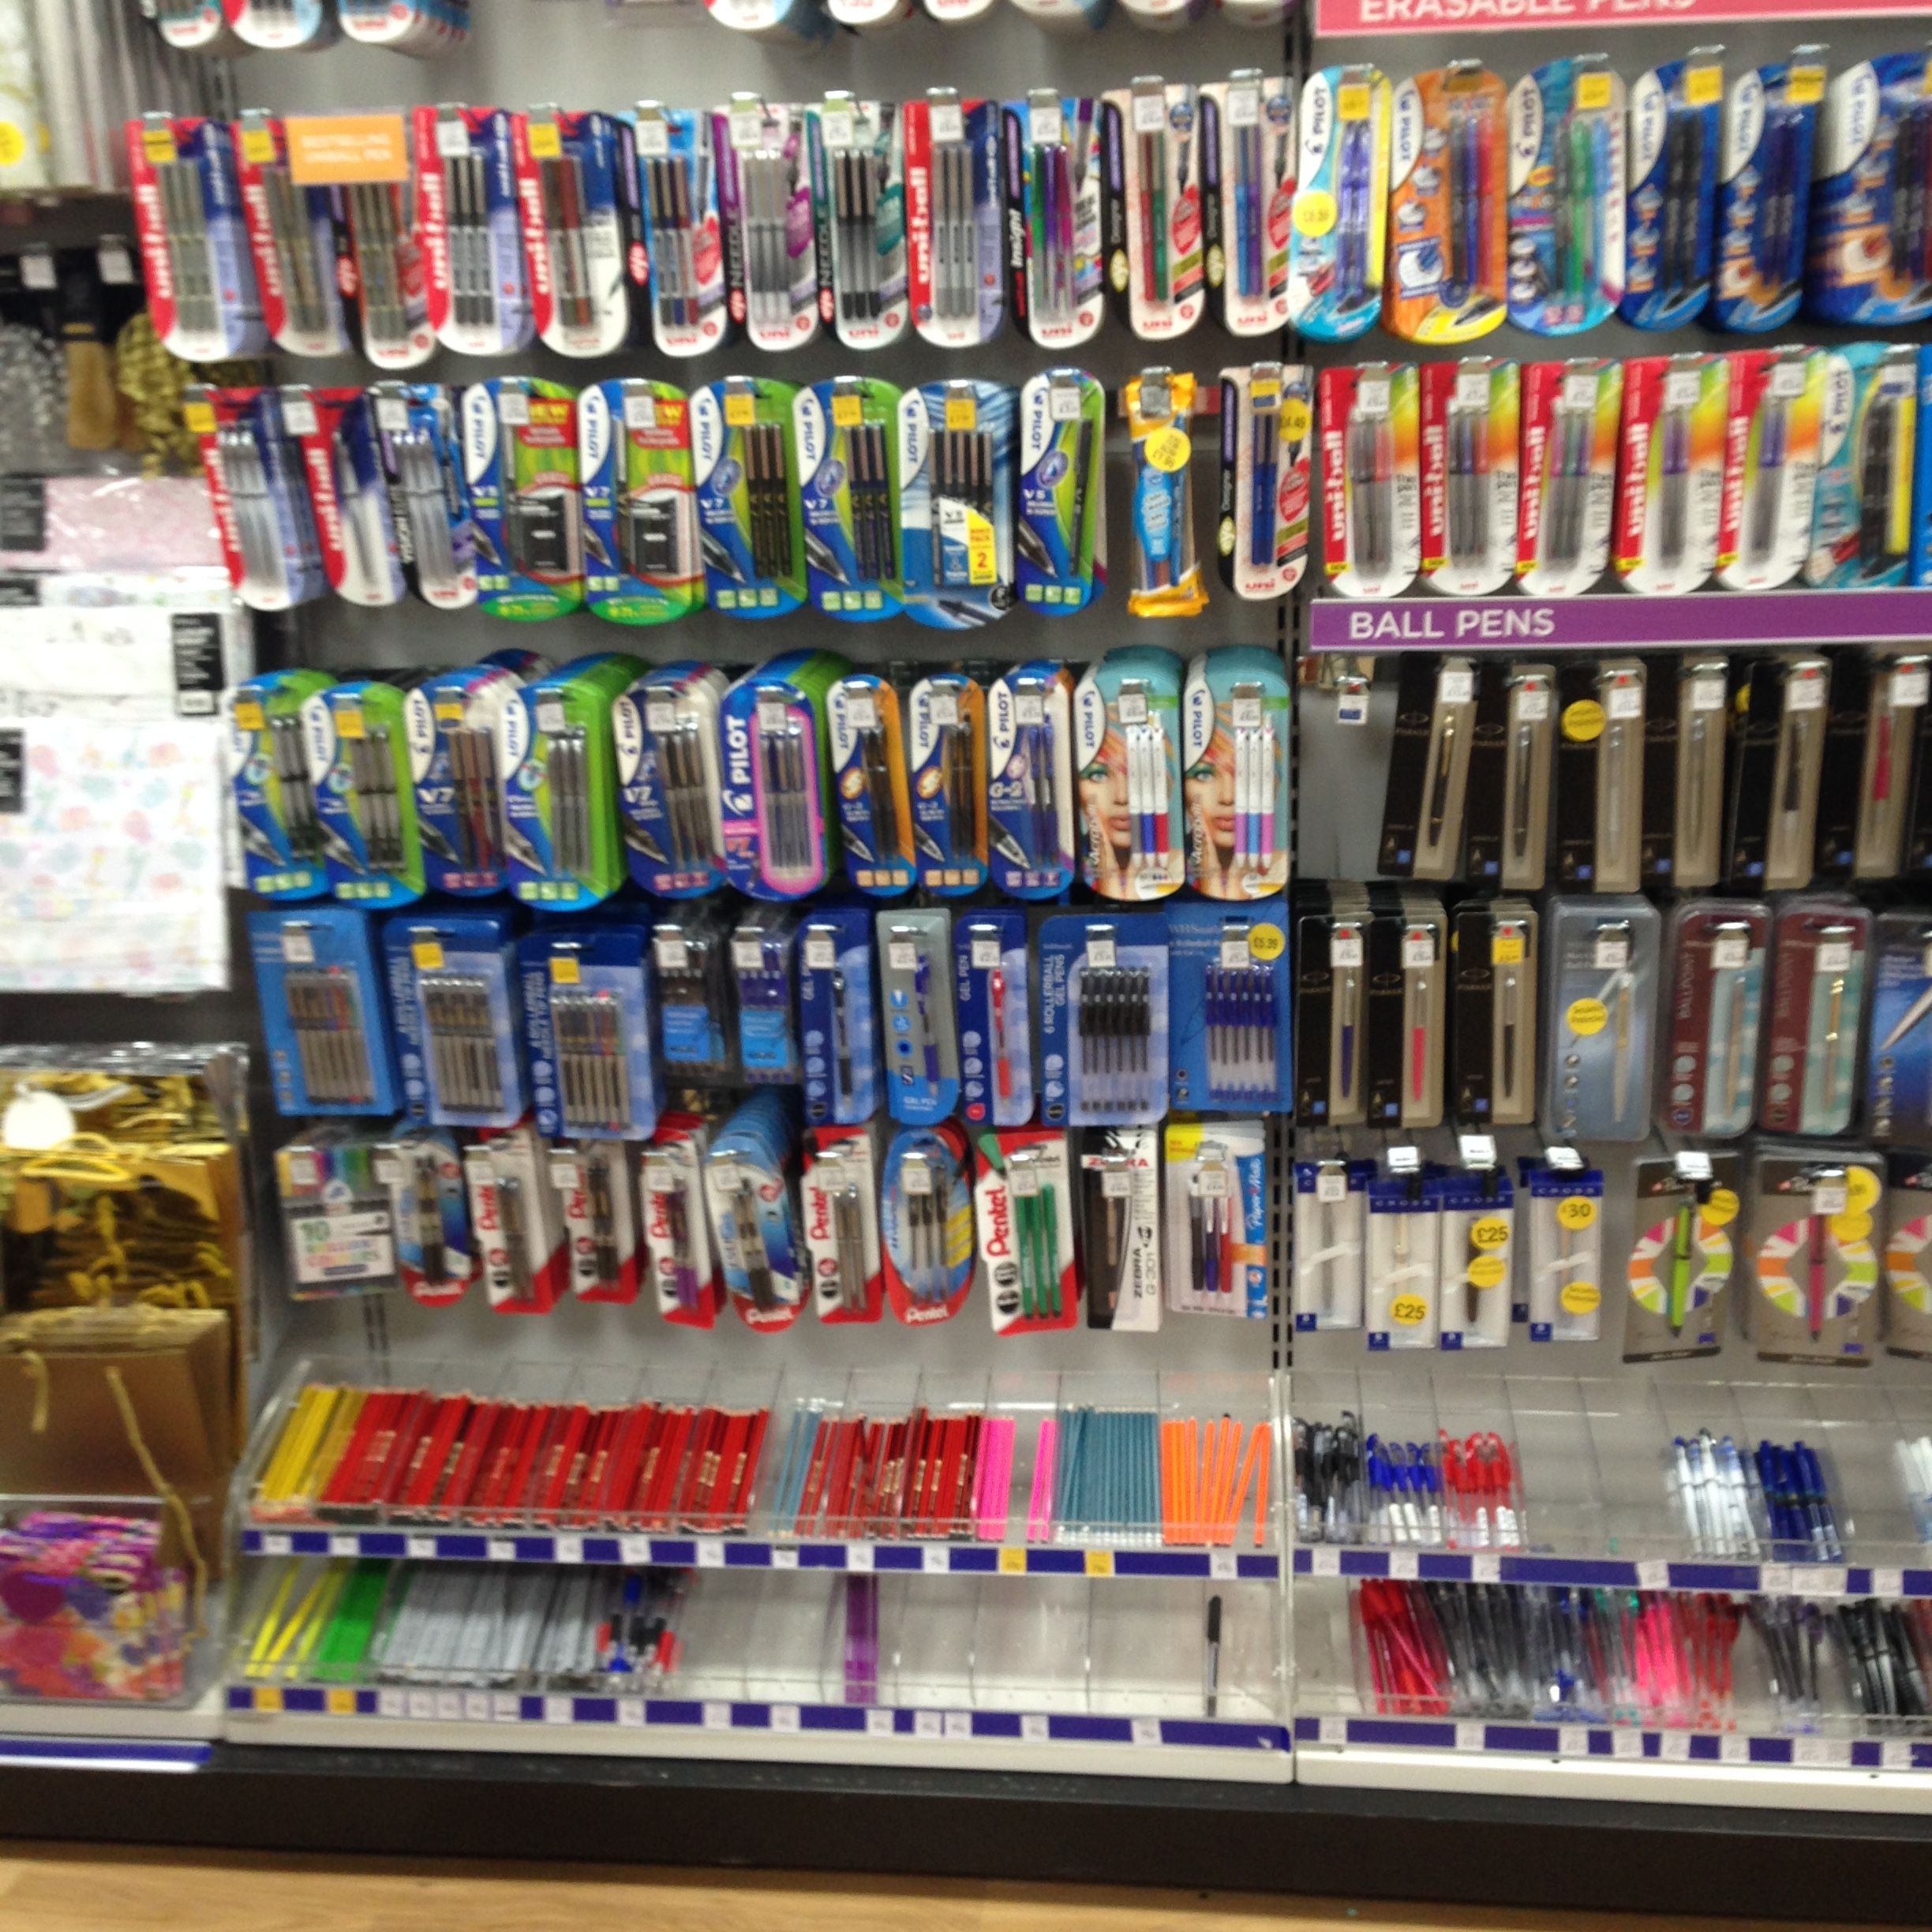 Shelving Shop Stationery Shelving Unit Retail Shelving Display Stationery Shop